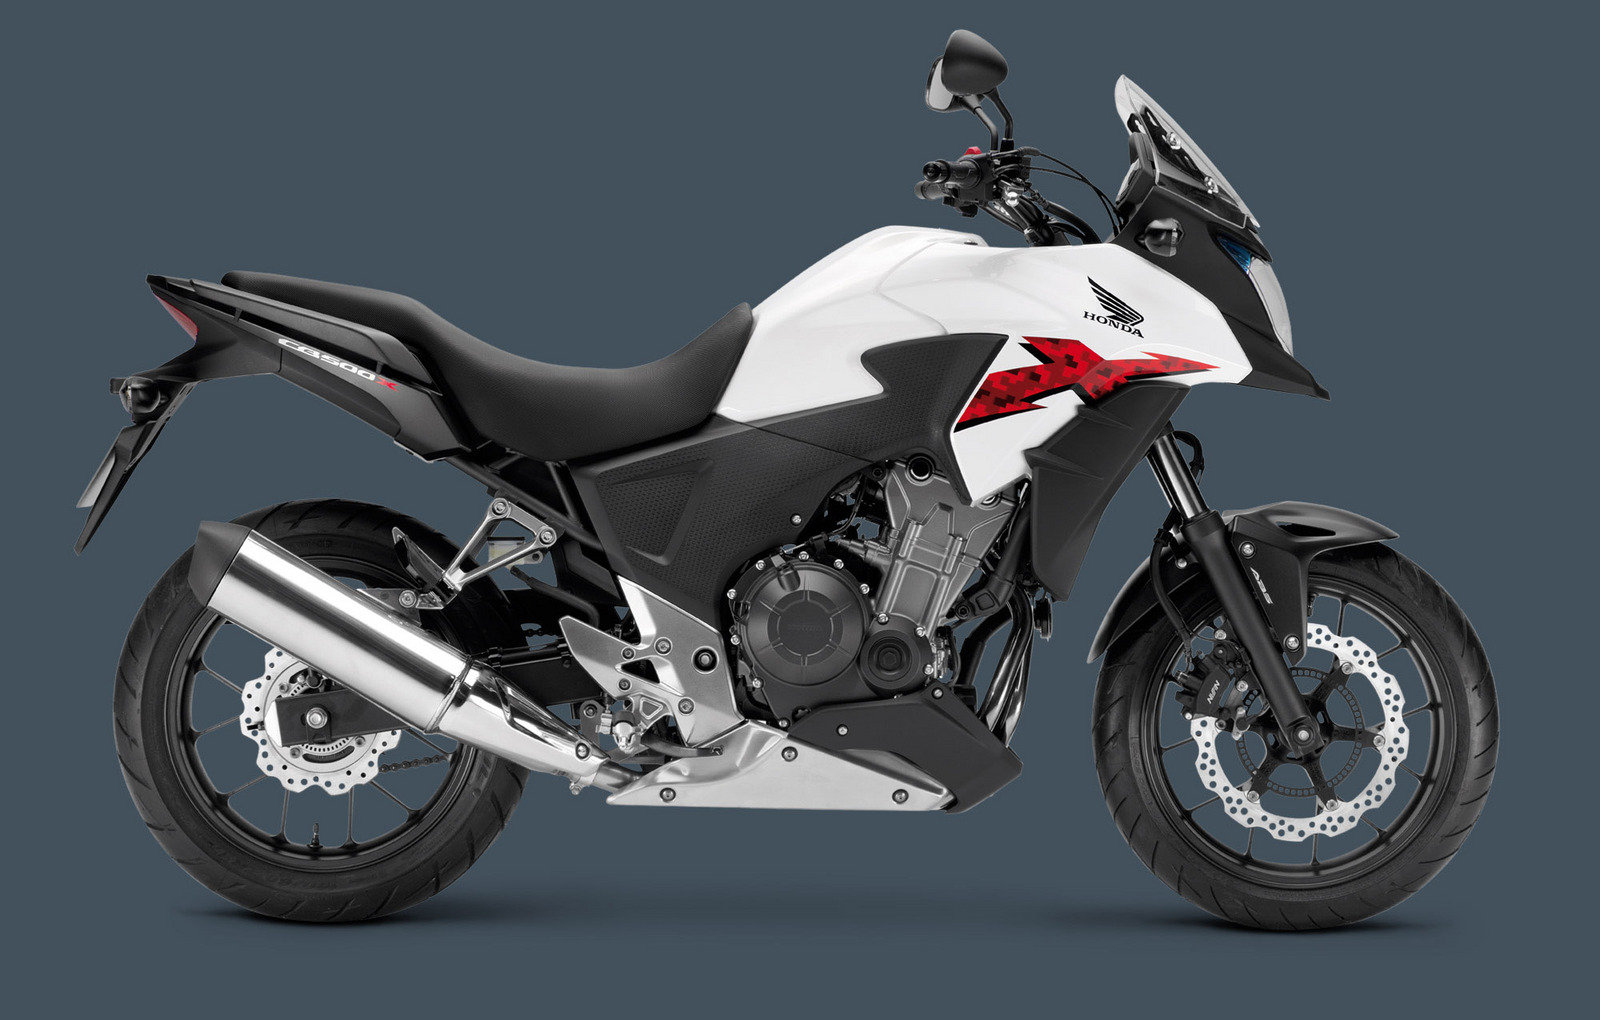 2017 honda cb500x abs motorcycle prices full technical. Black Bedroom Furniture Sets. Home Design Ideas